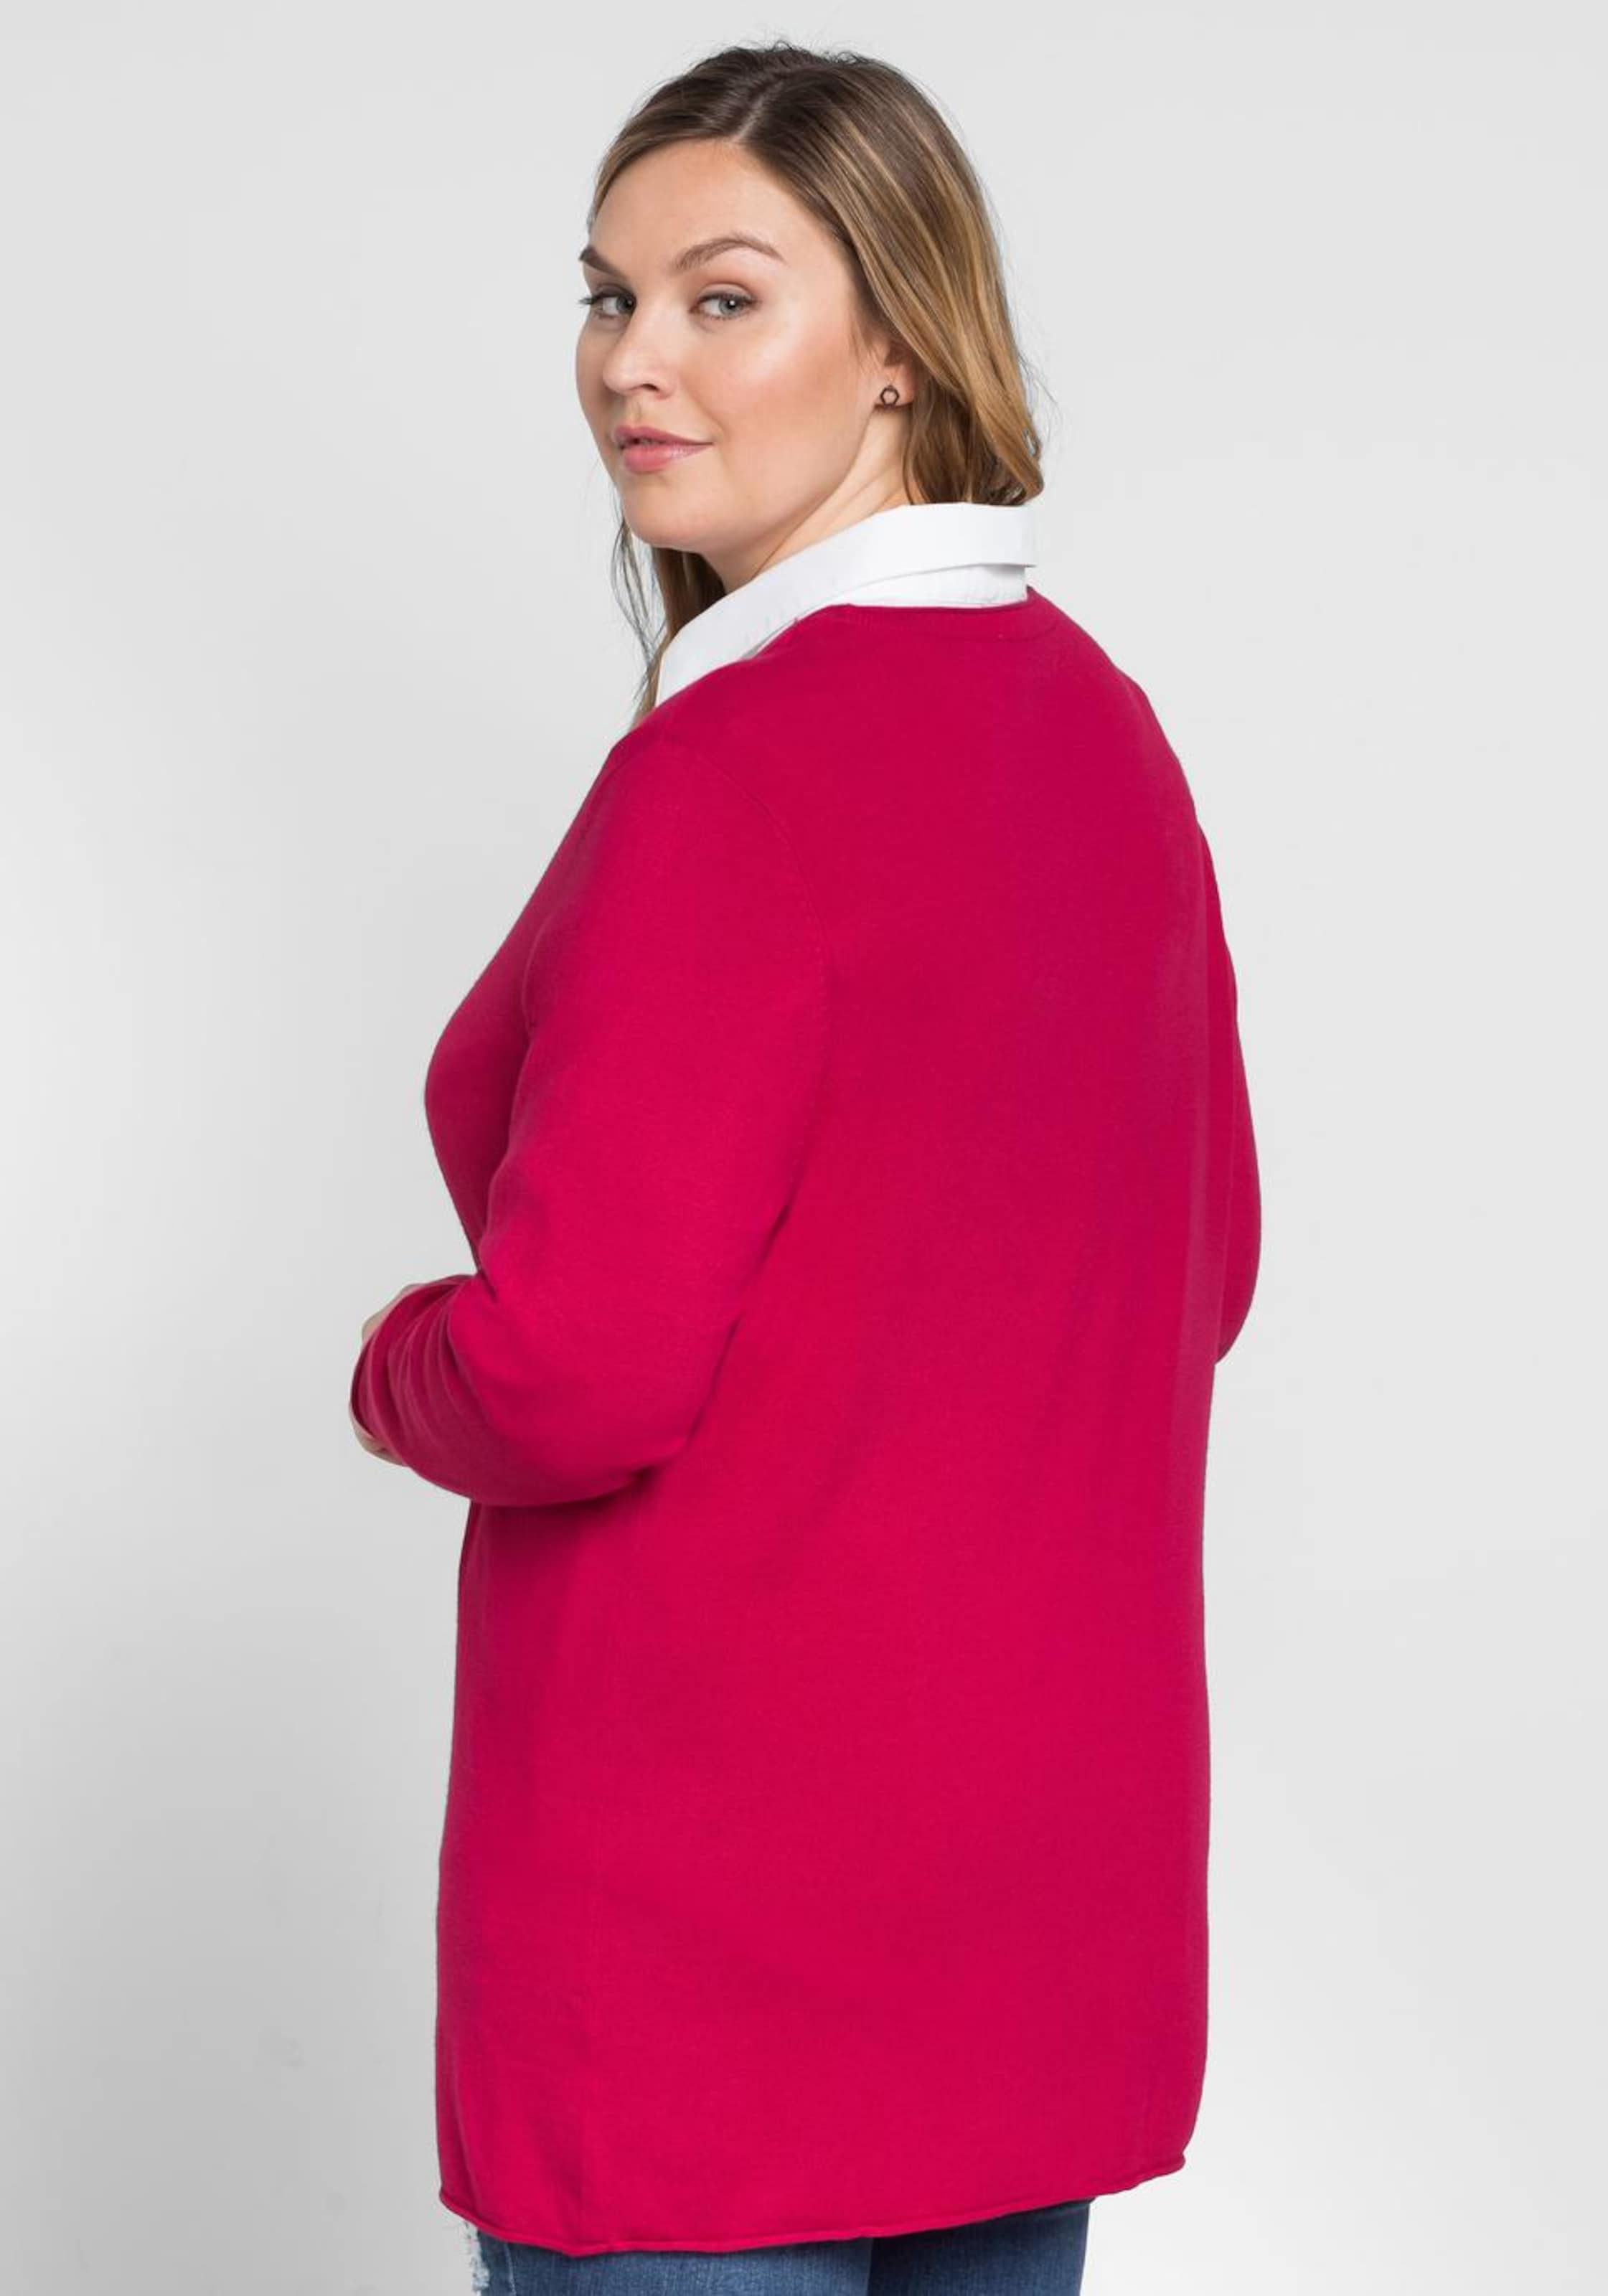 Casual Casual Sheego Sheego In Cranberry In Sheego Cardigan Cardigan Cranberry drthCsQx